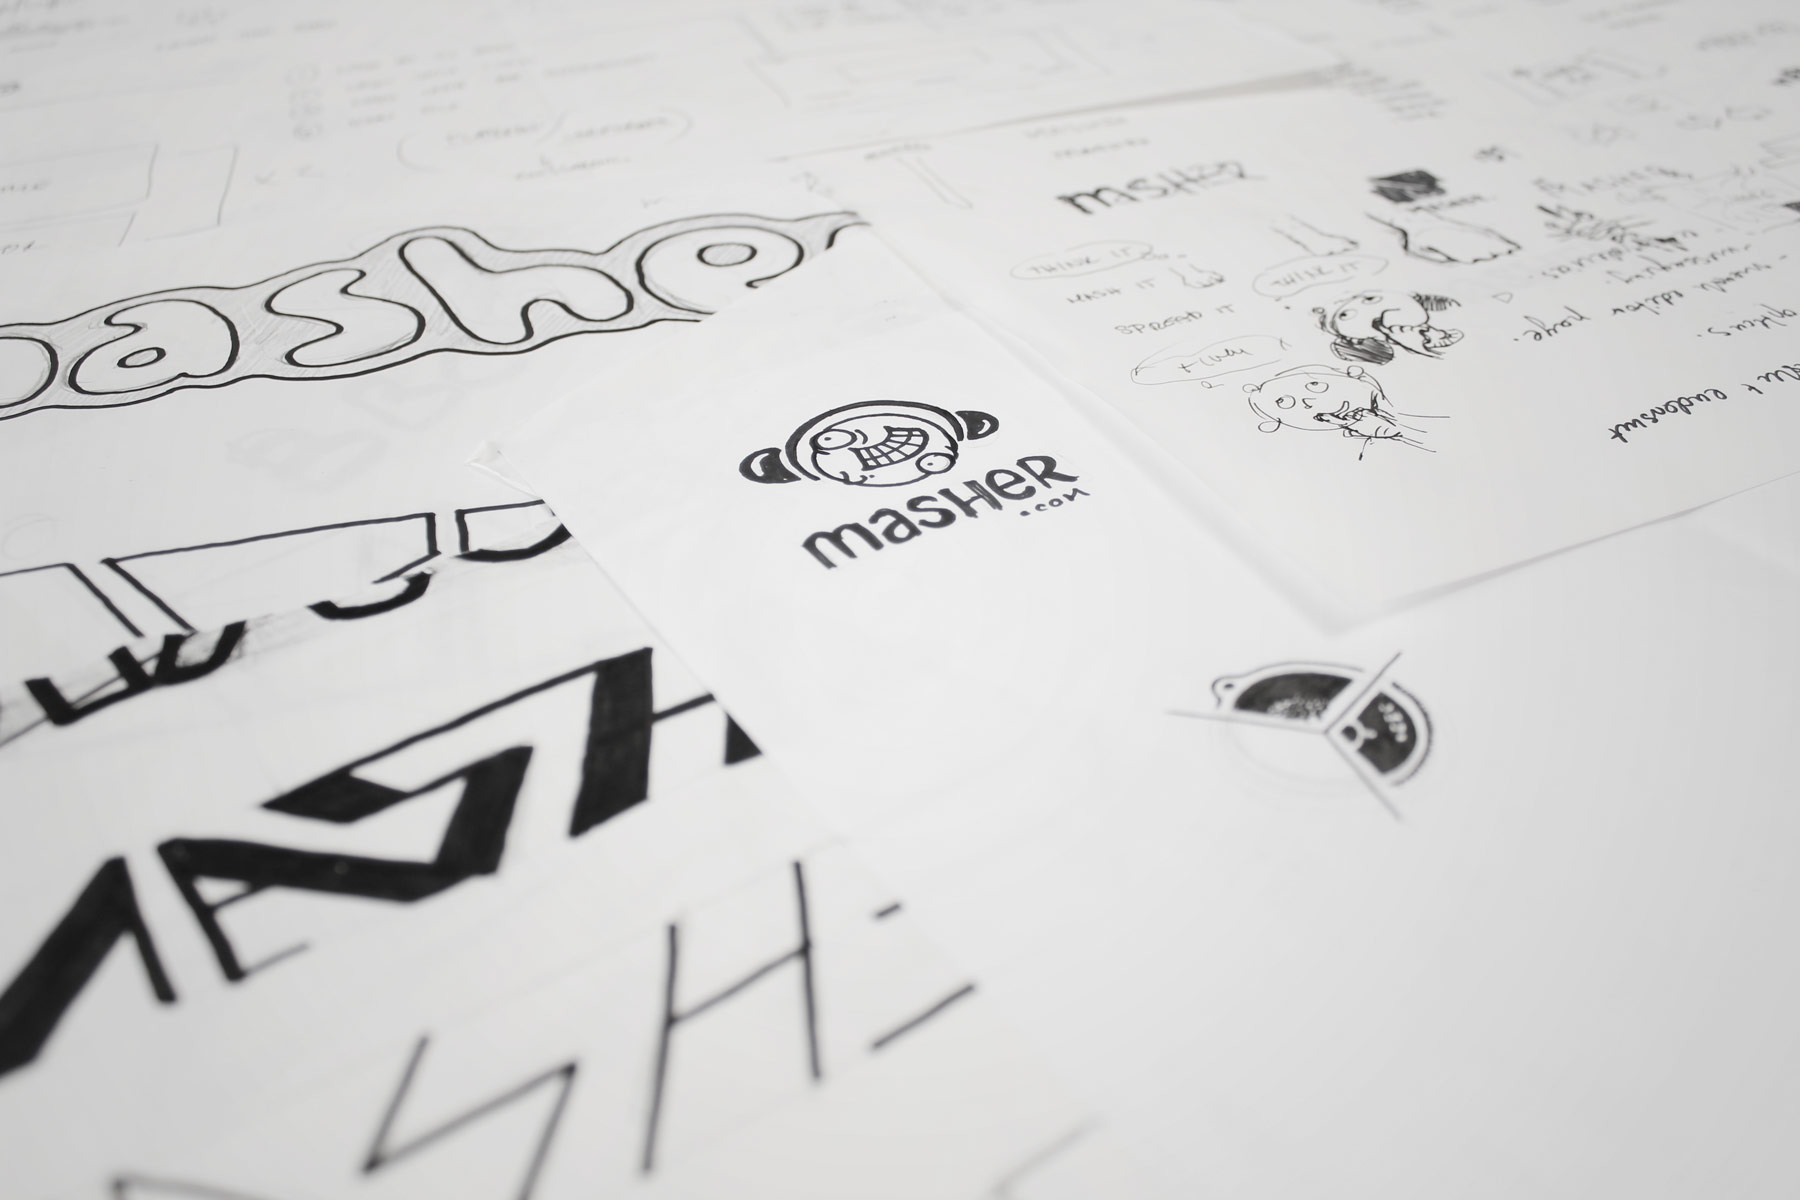 We wanted the brand to have a memorable type treatment, so we experimented with both hand cut and machined type.